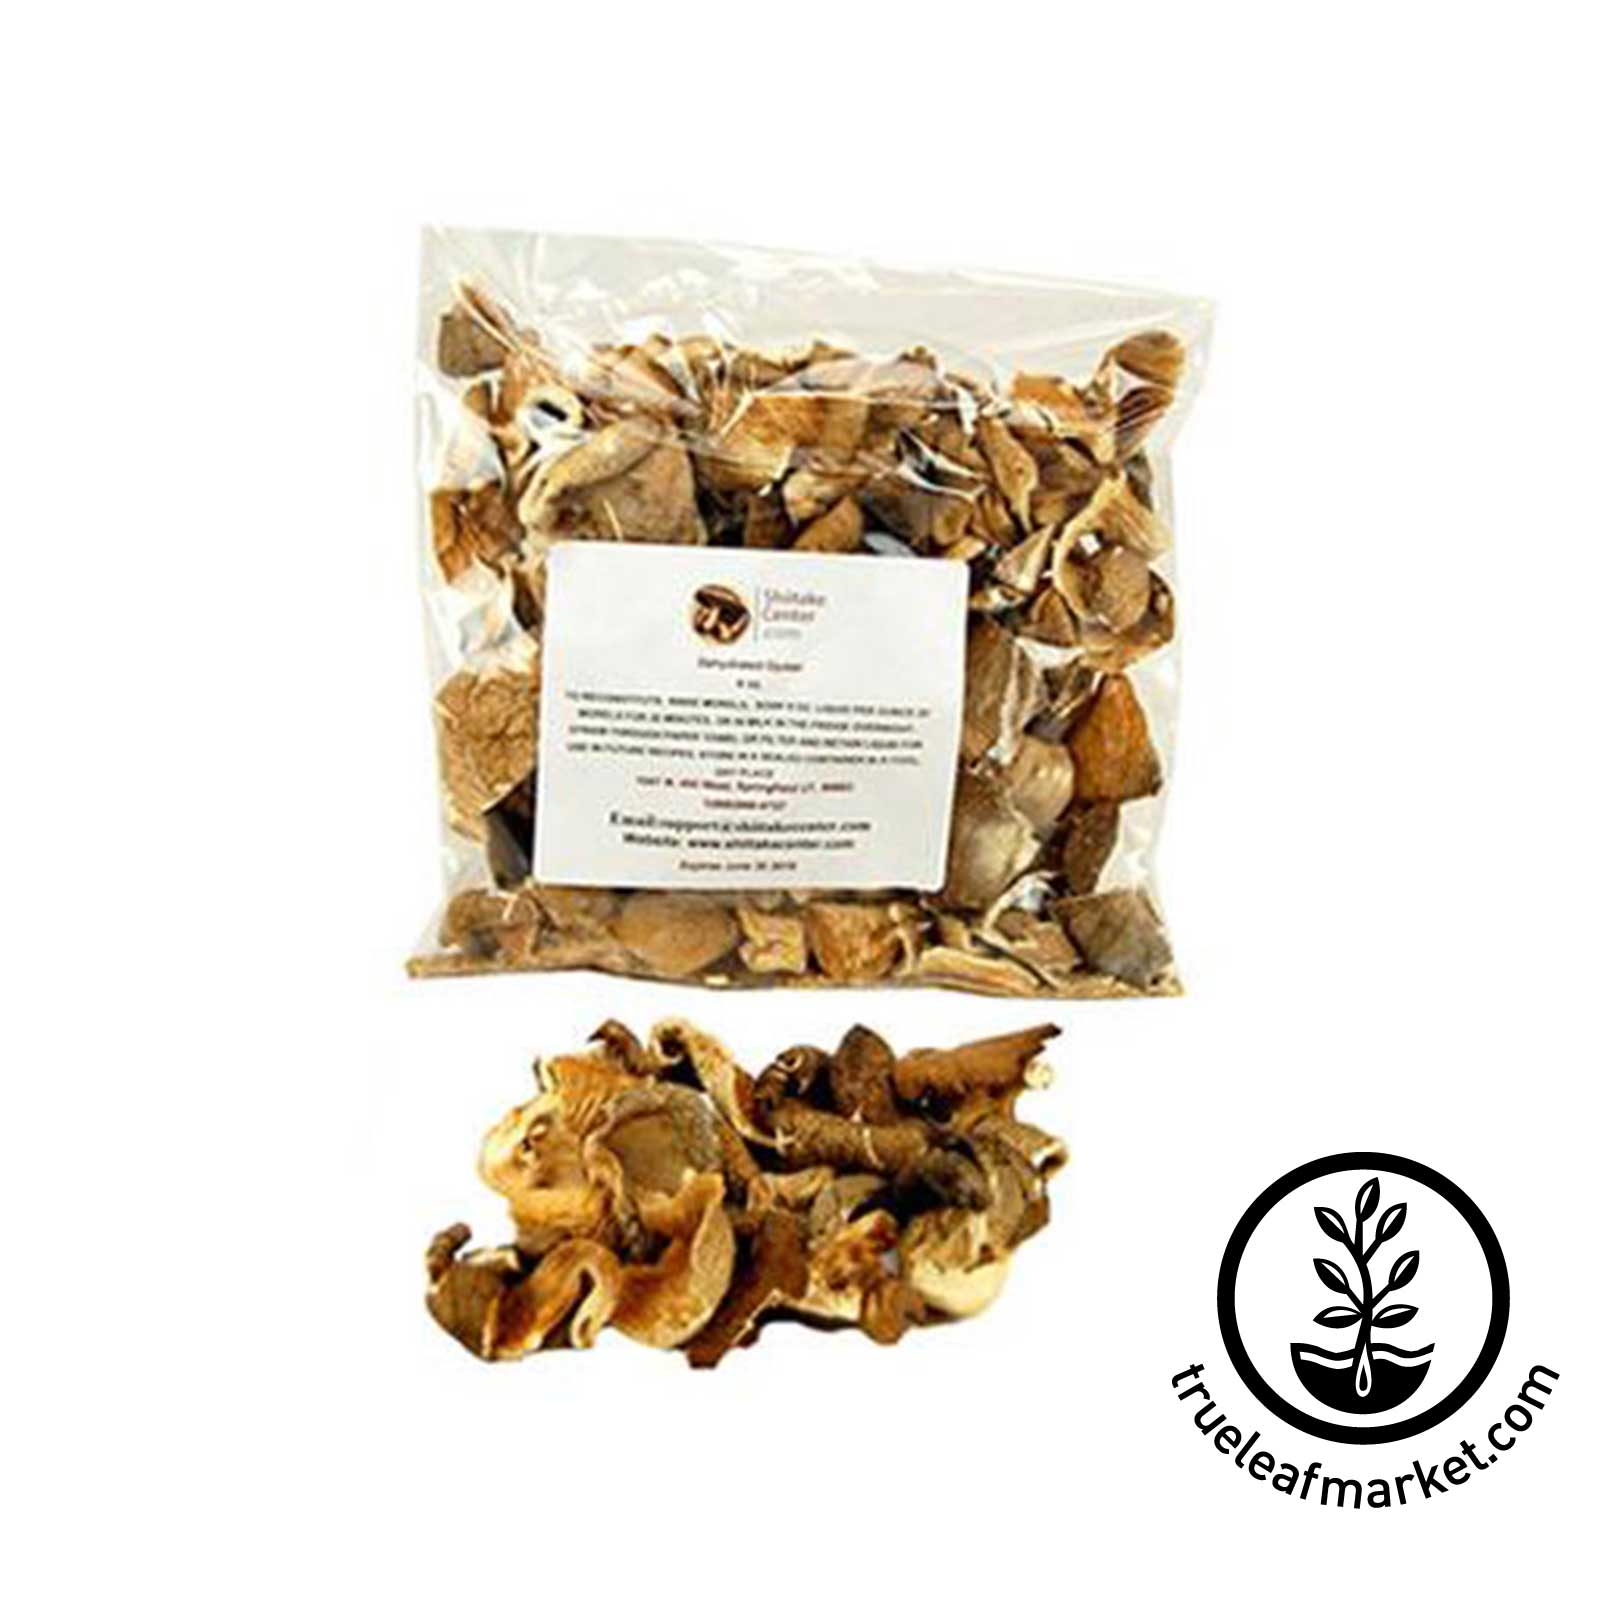 Dehydrated Oyster Mushrooms mushroom, dried, dehydrated, oyster, pleurotus, ostreatus